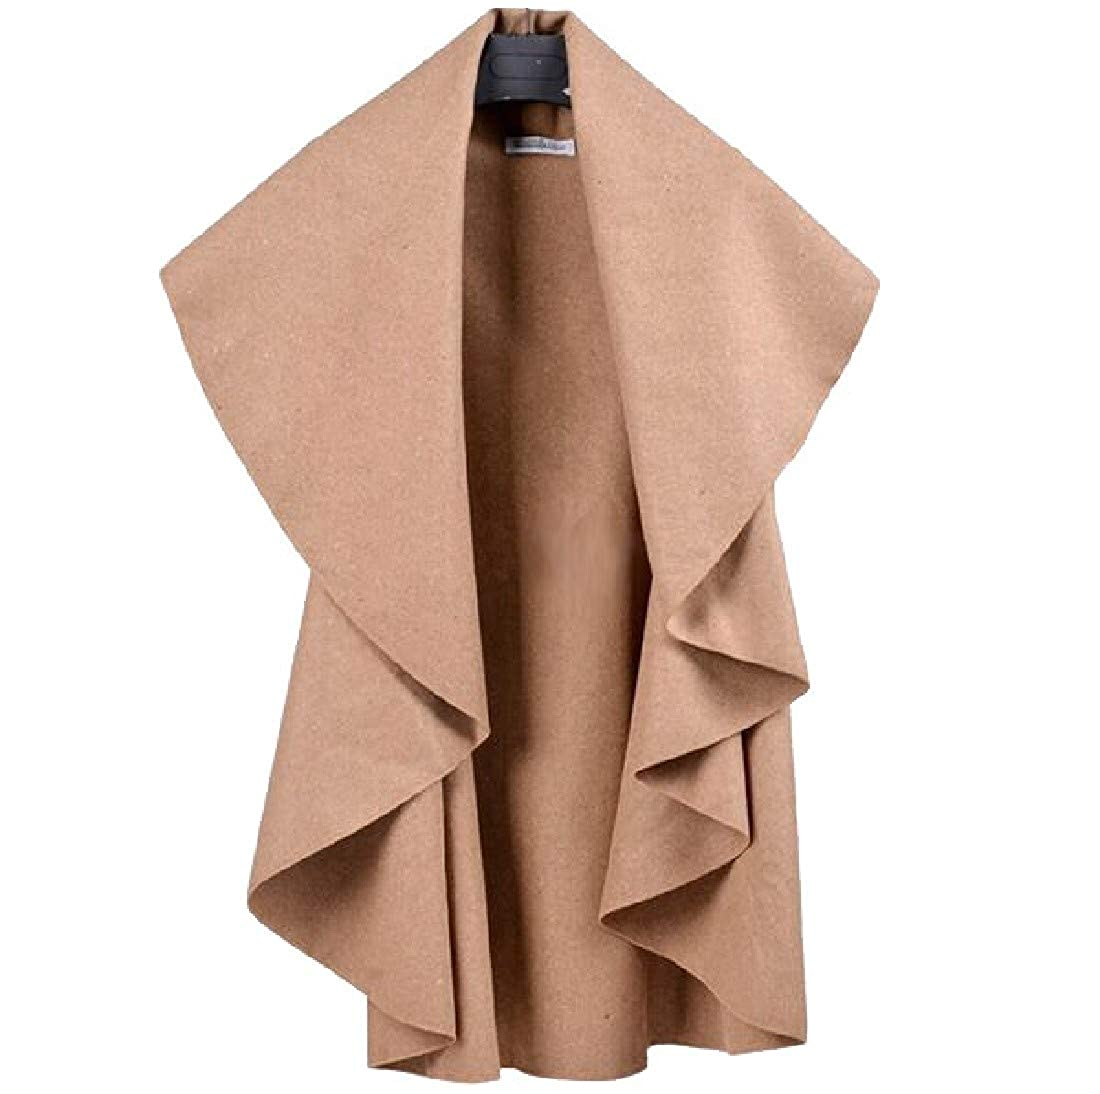 Coolred-Women Poncho with Drape Trendy Woolen Vest Cardigan Jacket